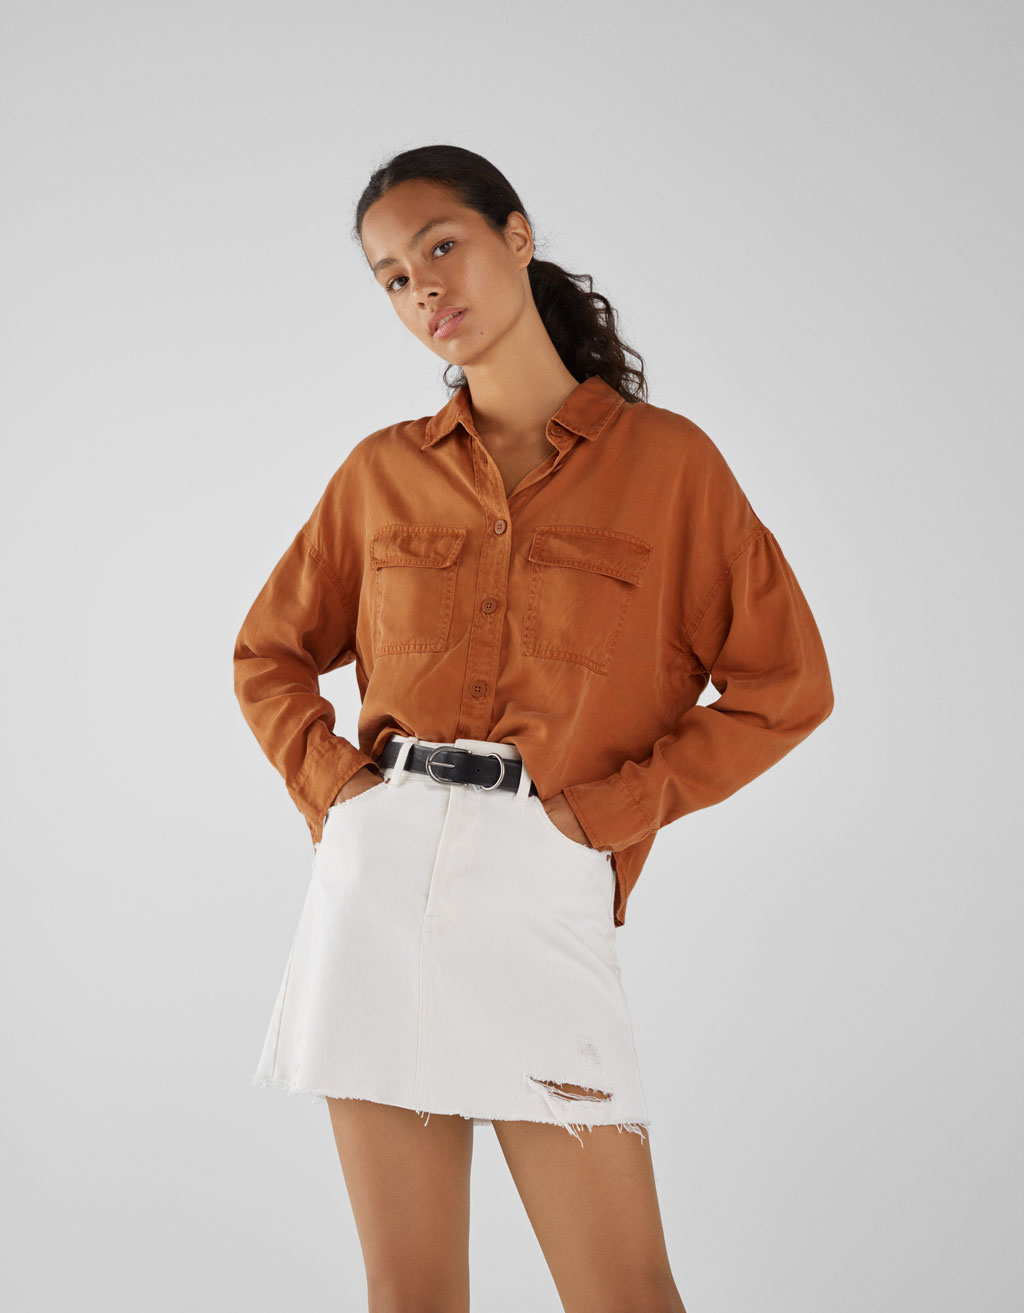 Embroidered Tencel® Shirt by Bershka